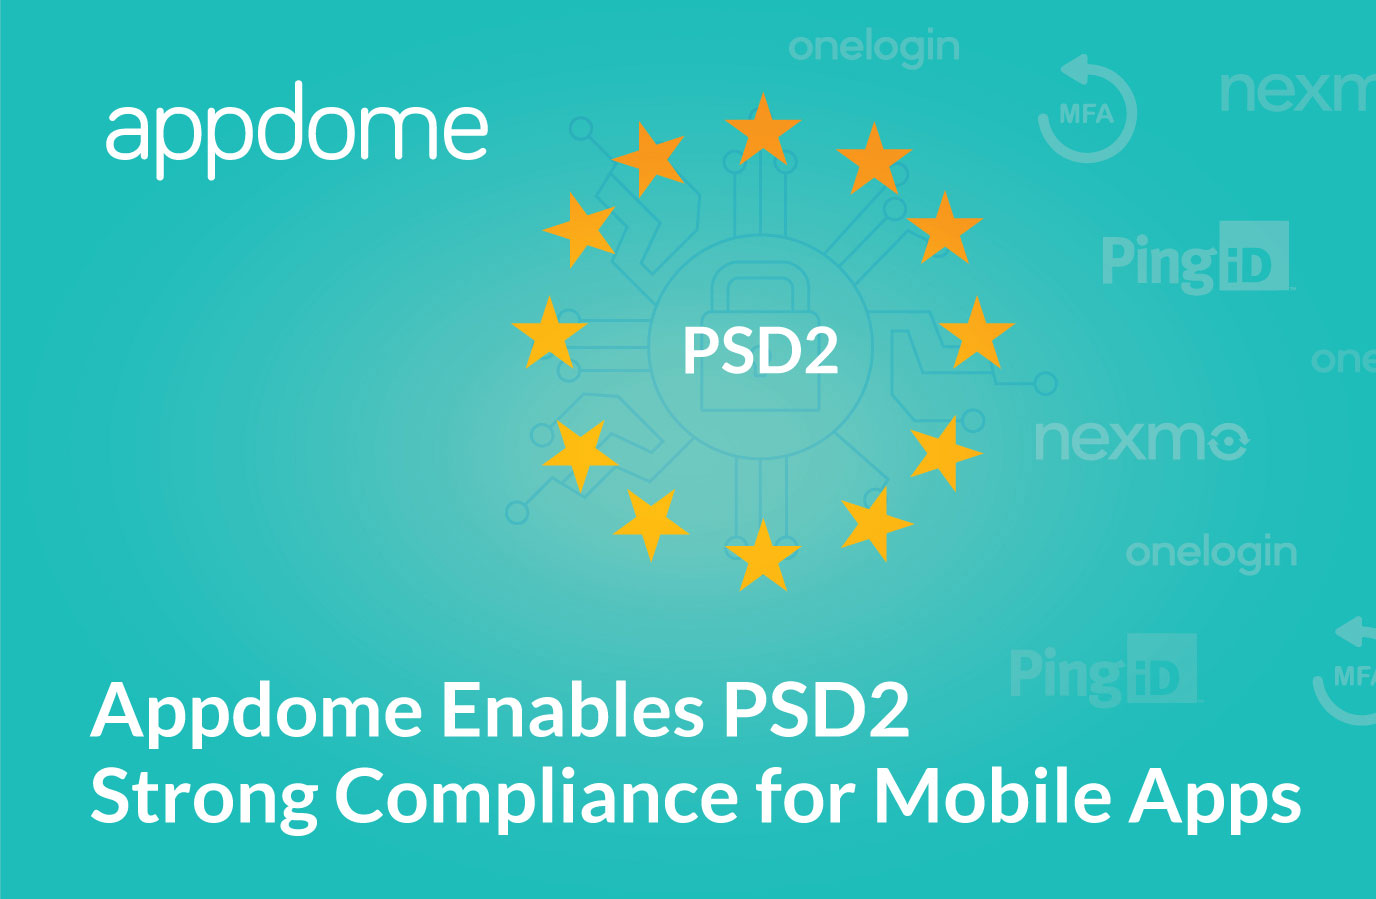 Appdome enables PSD2 compliance in mobile apps